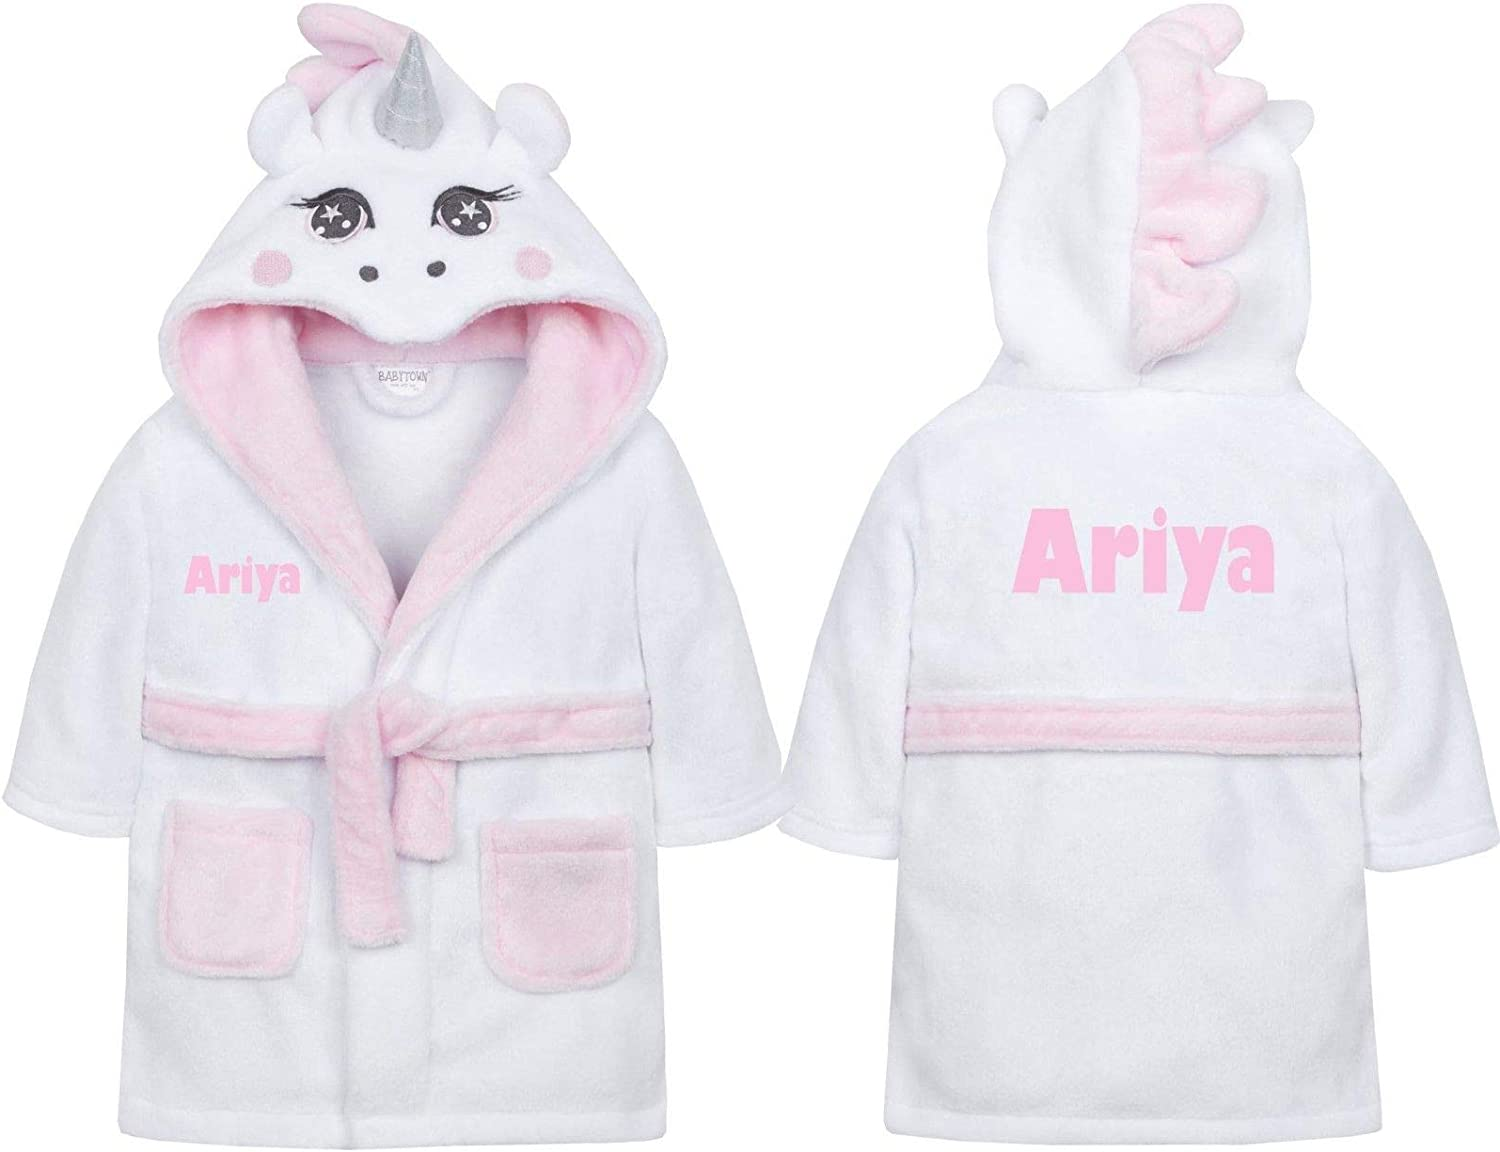 Personalised Baby Robe Bath Dressing Gown Embroidered Ears Boy Girl 1st Birthday